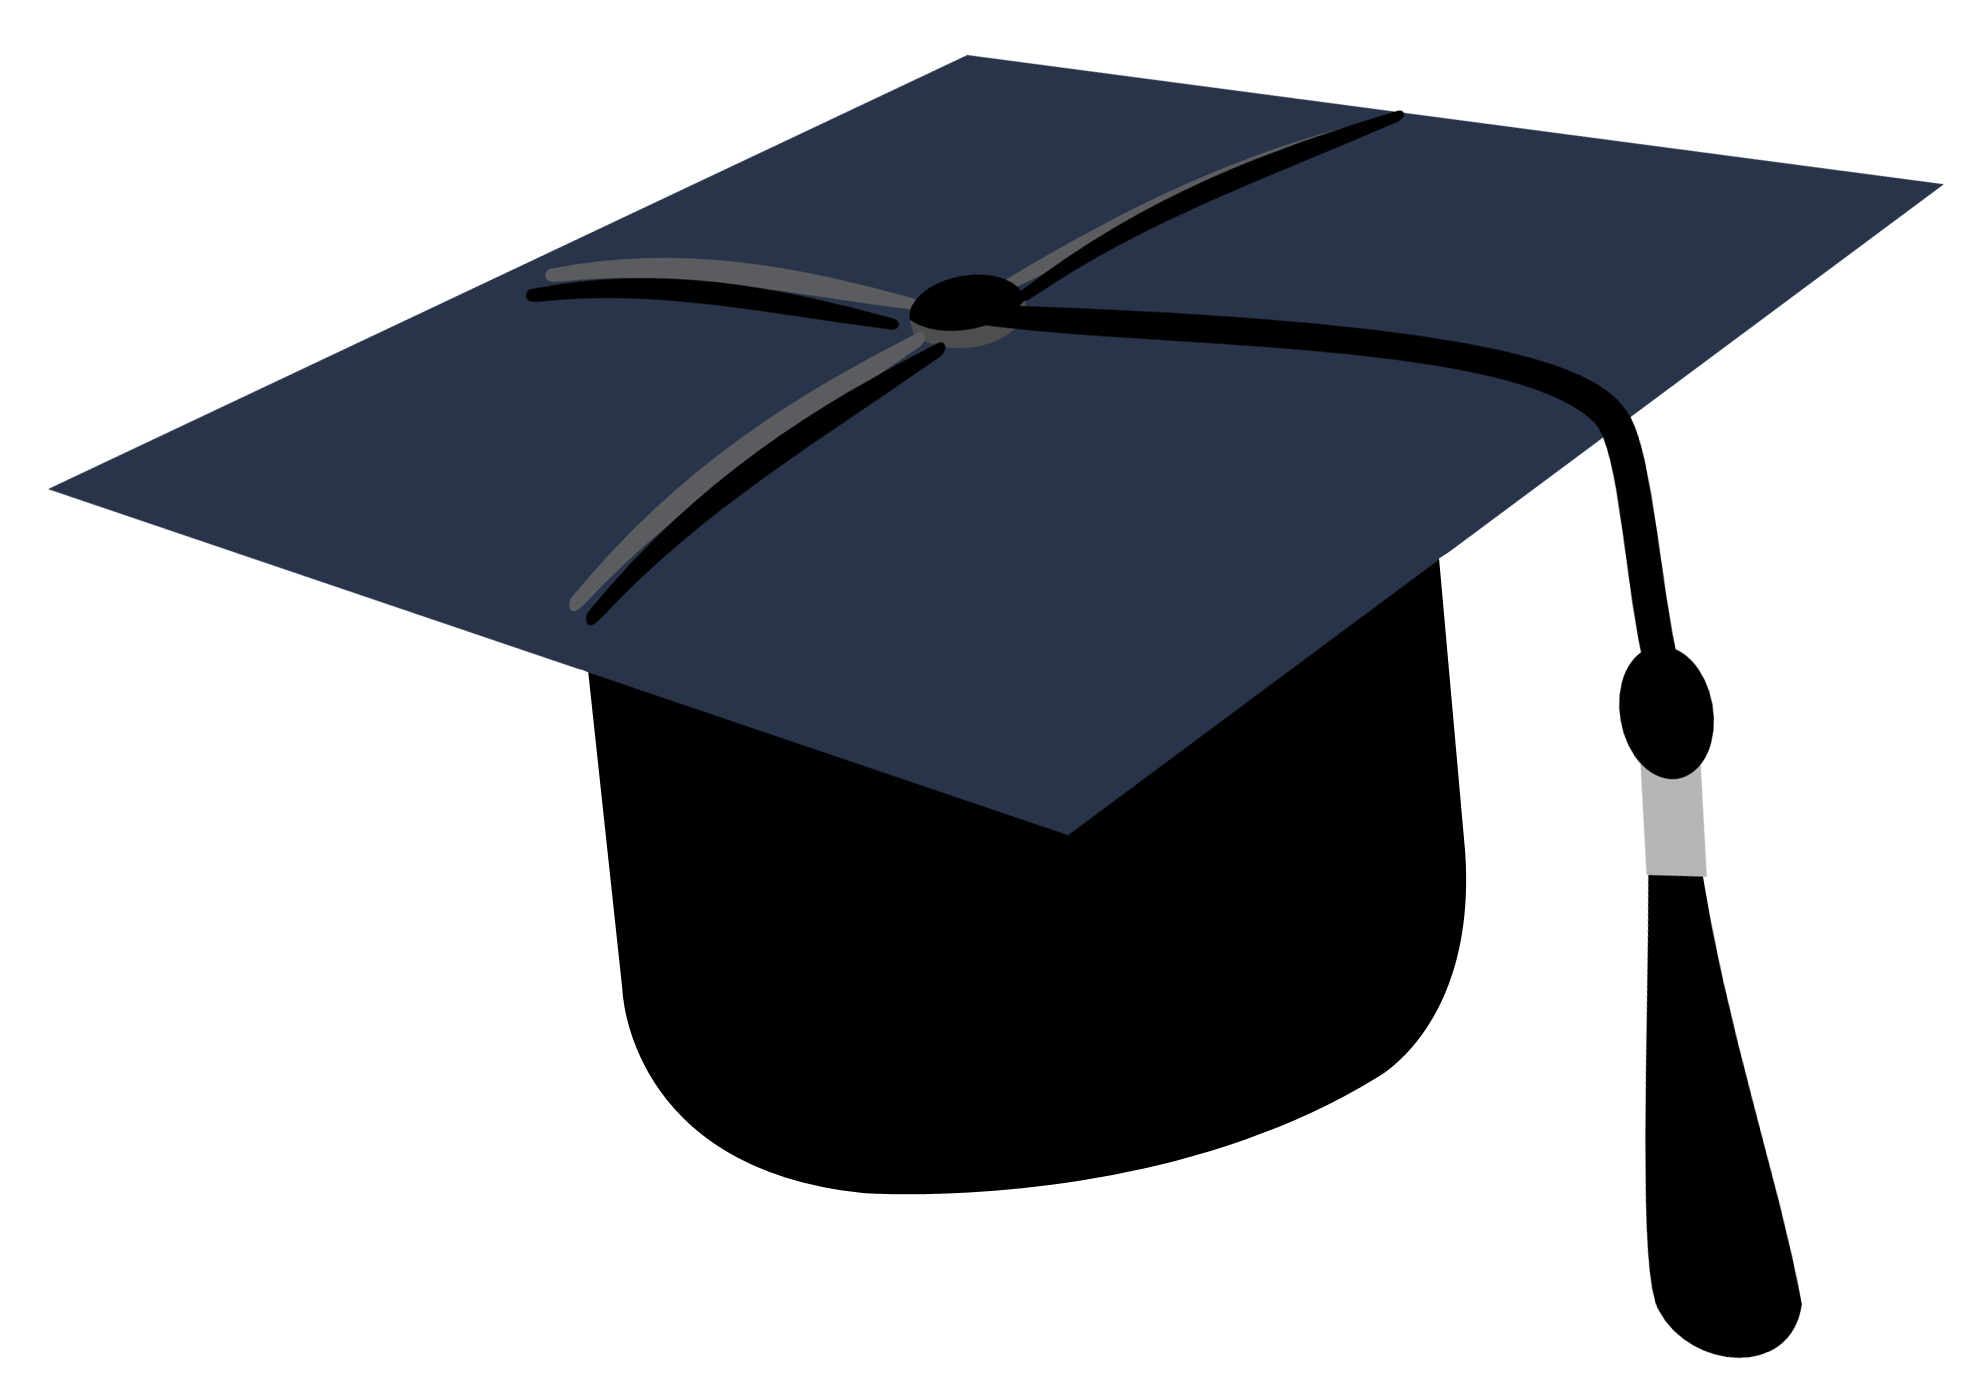 Graduation .png. Degree hat cap png